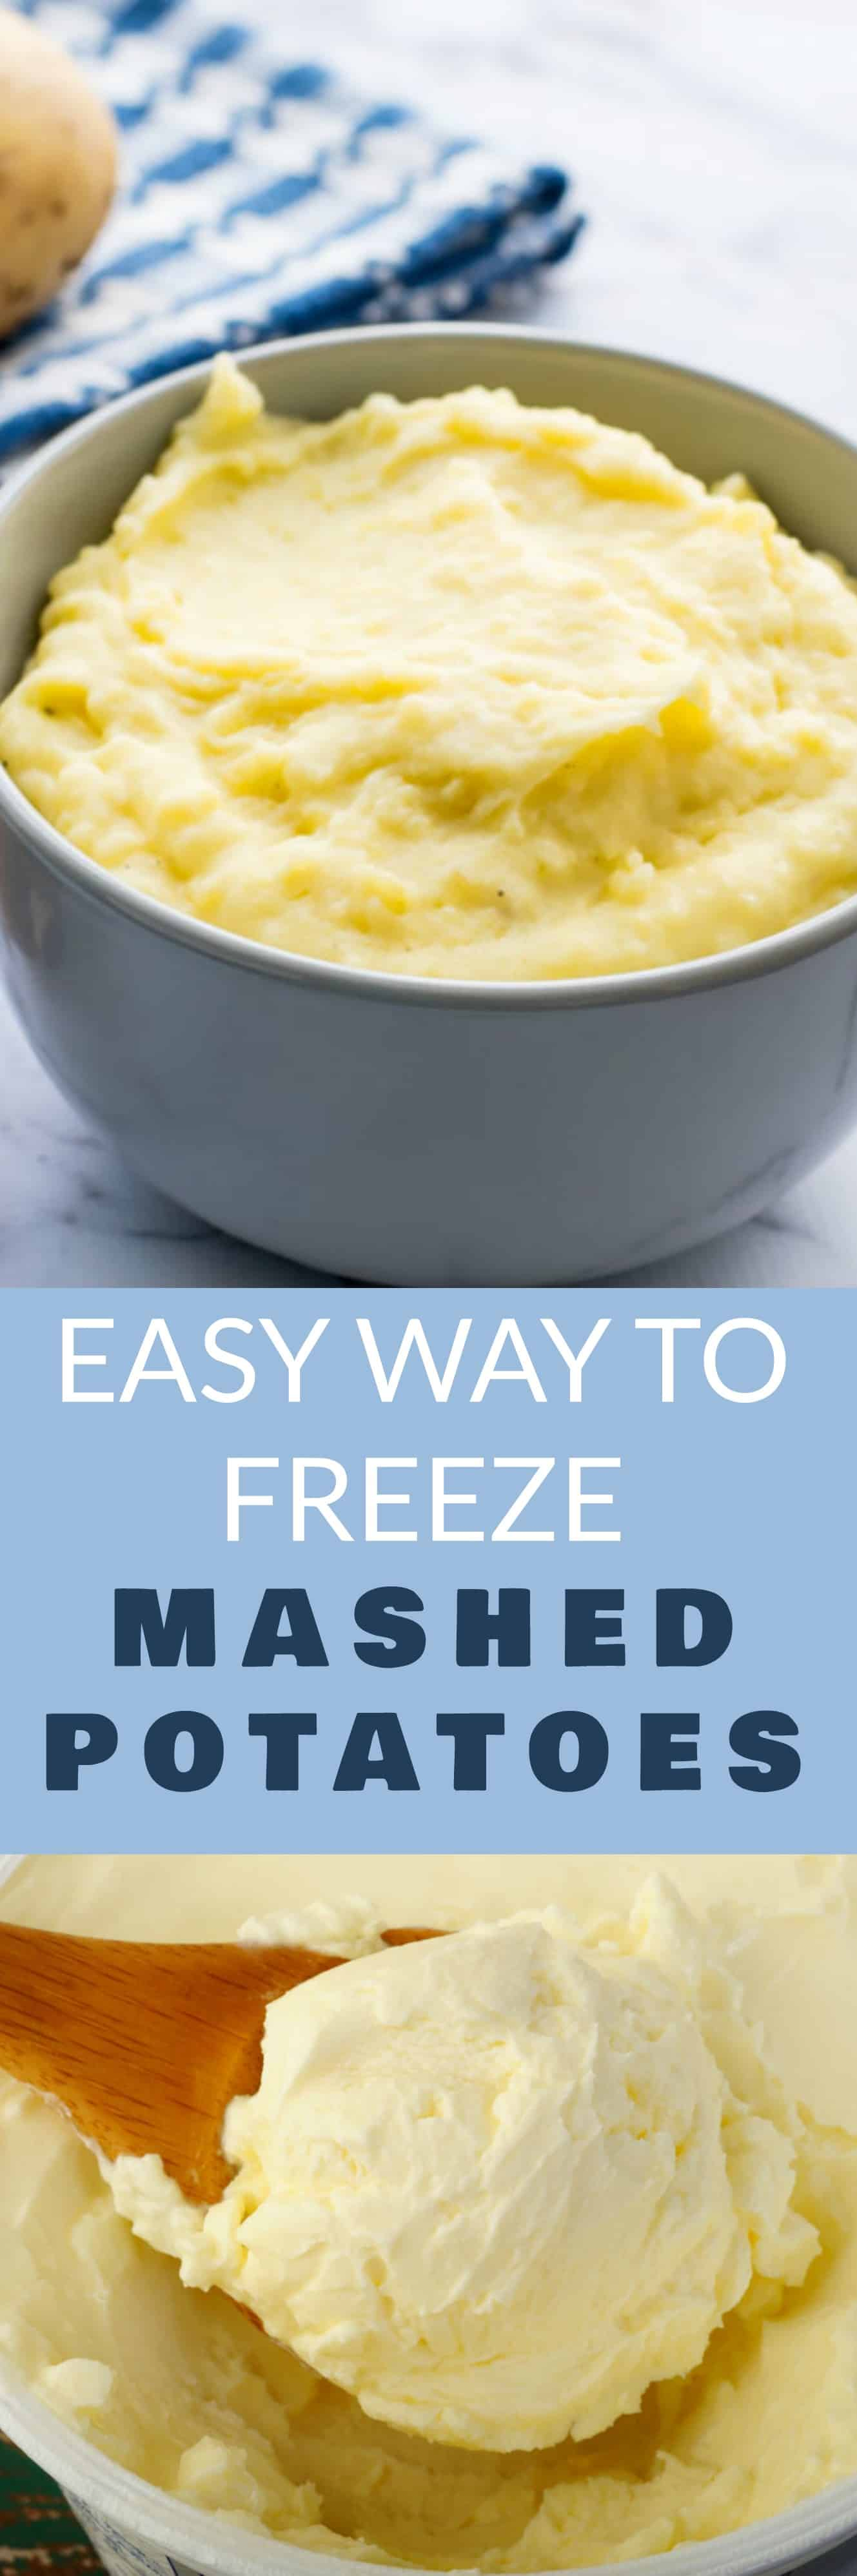 EASY way to FREEZE Mashed Potatoes! Follow these step by step instructions on how to freeze leftover mashed potatoes and get the magic trick to make them taste great! Never throw away leftover Thanksgivingor holiday potatoes again! I alwaysfreeze mashed potatoes to serve for quick weeknight dinners!